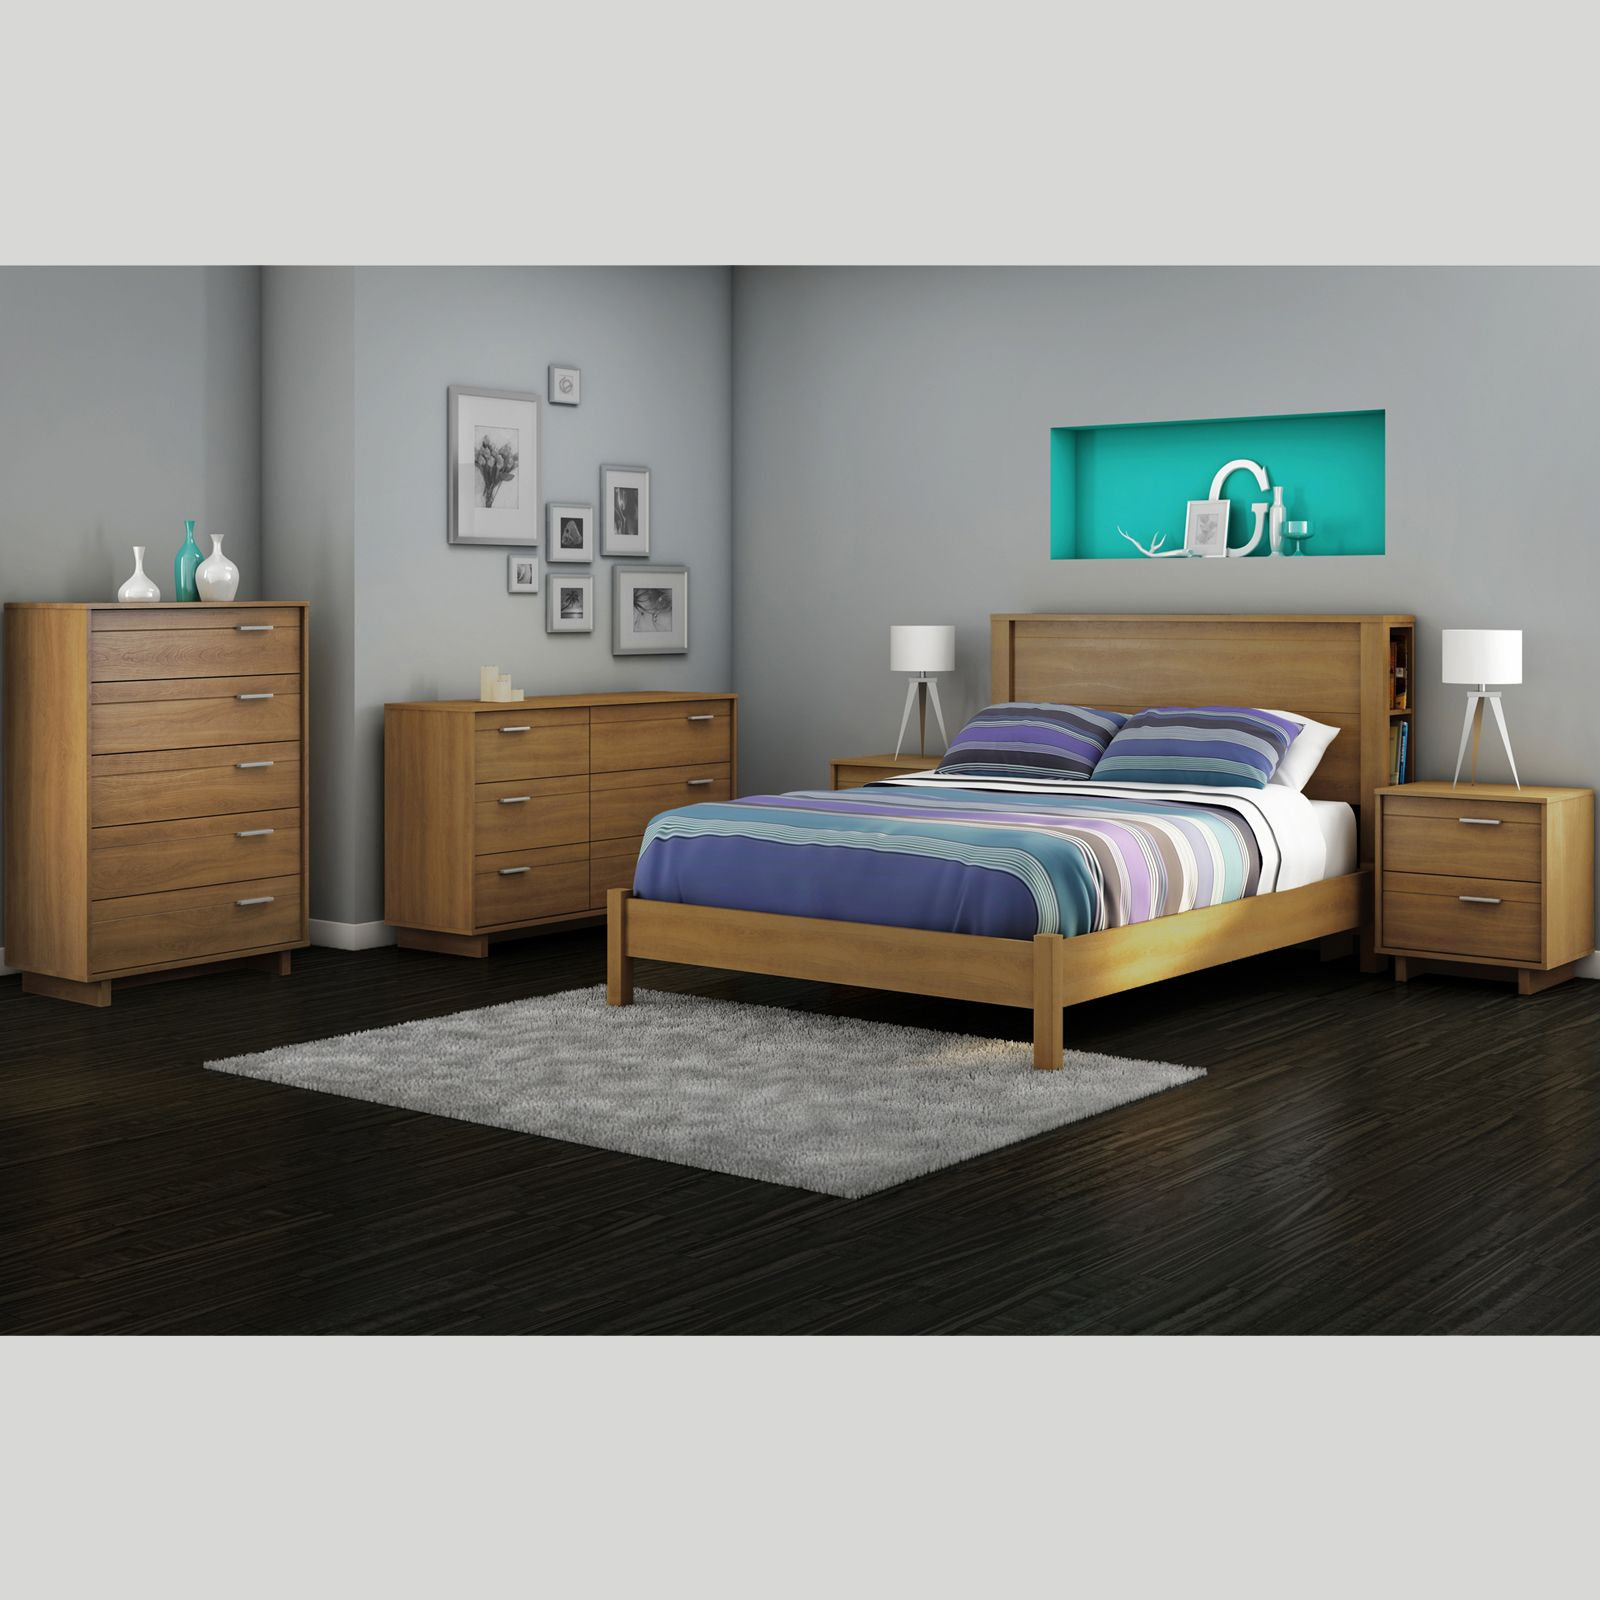 South Shore Fynn Bedroom Furniture set | Things That Don\'t Fit in an ...